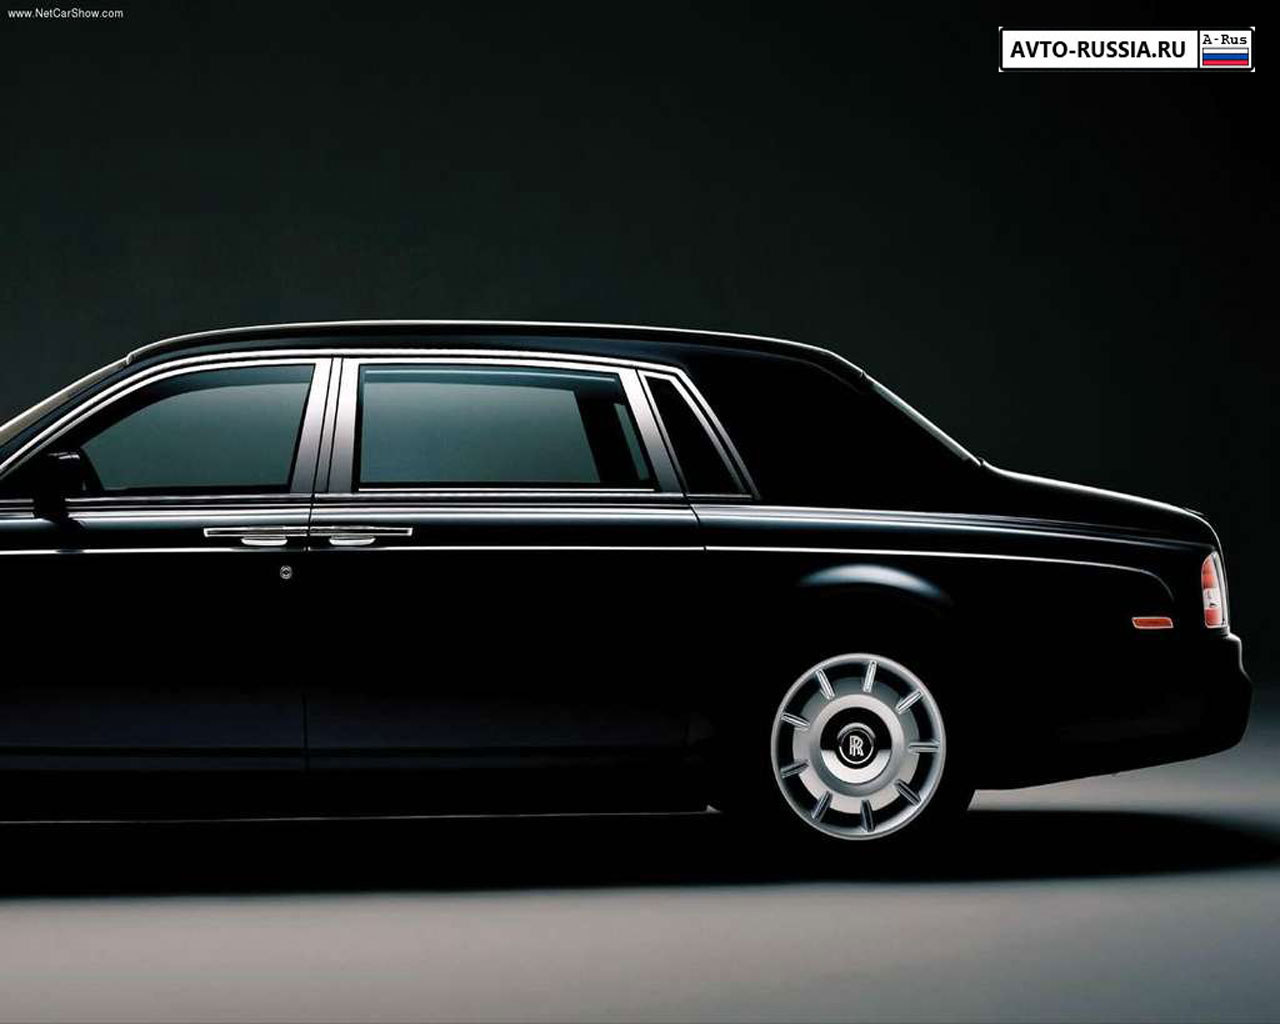 Rolls Royce Phantom: 09 фото